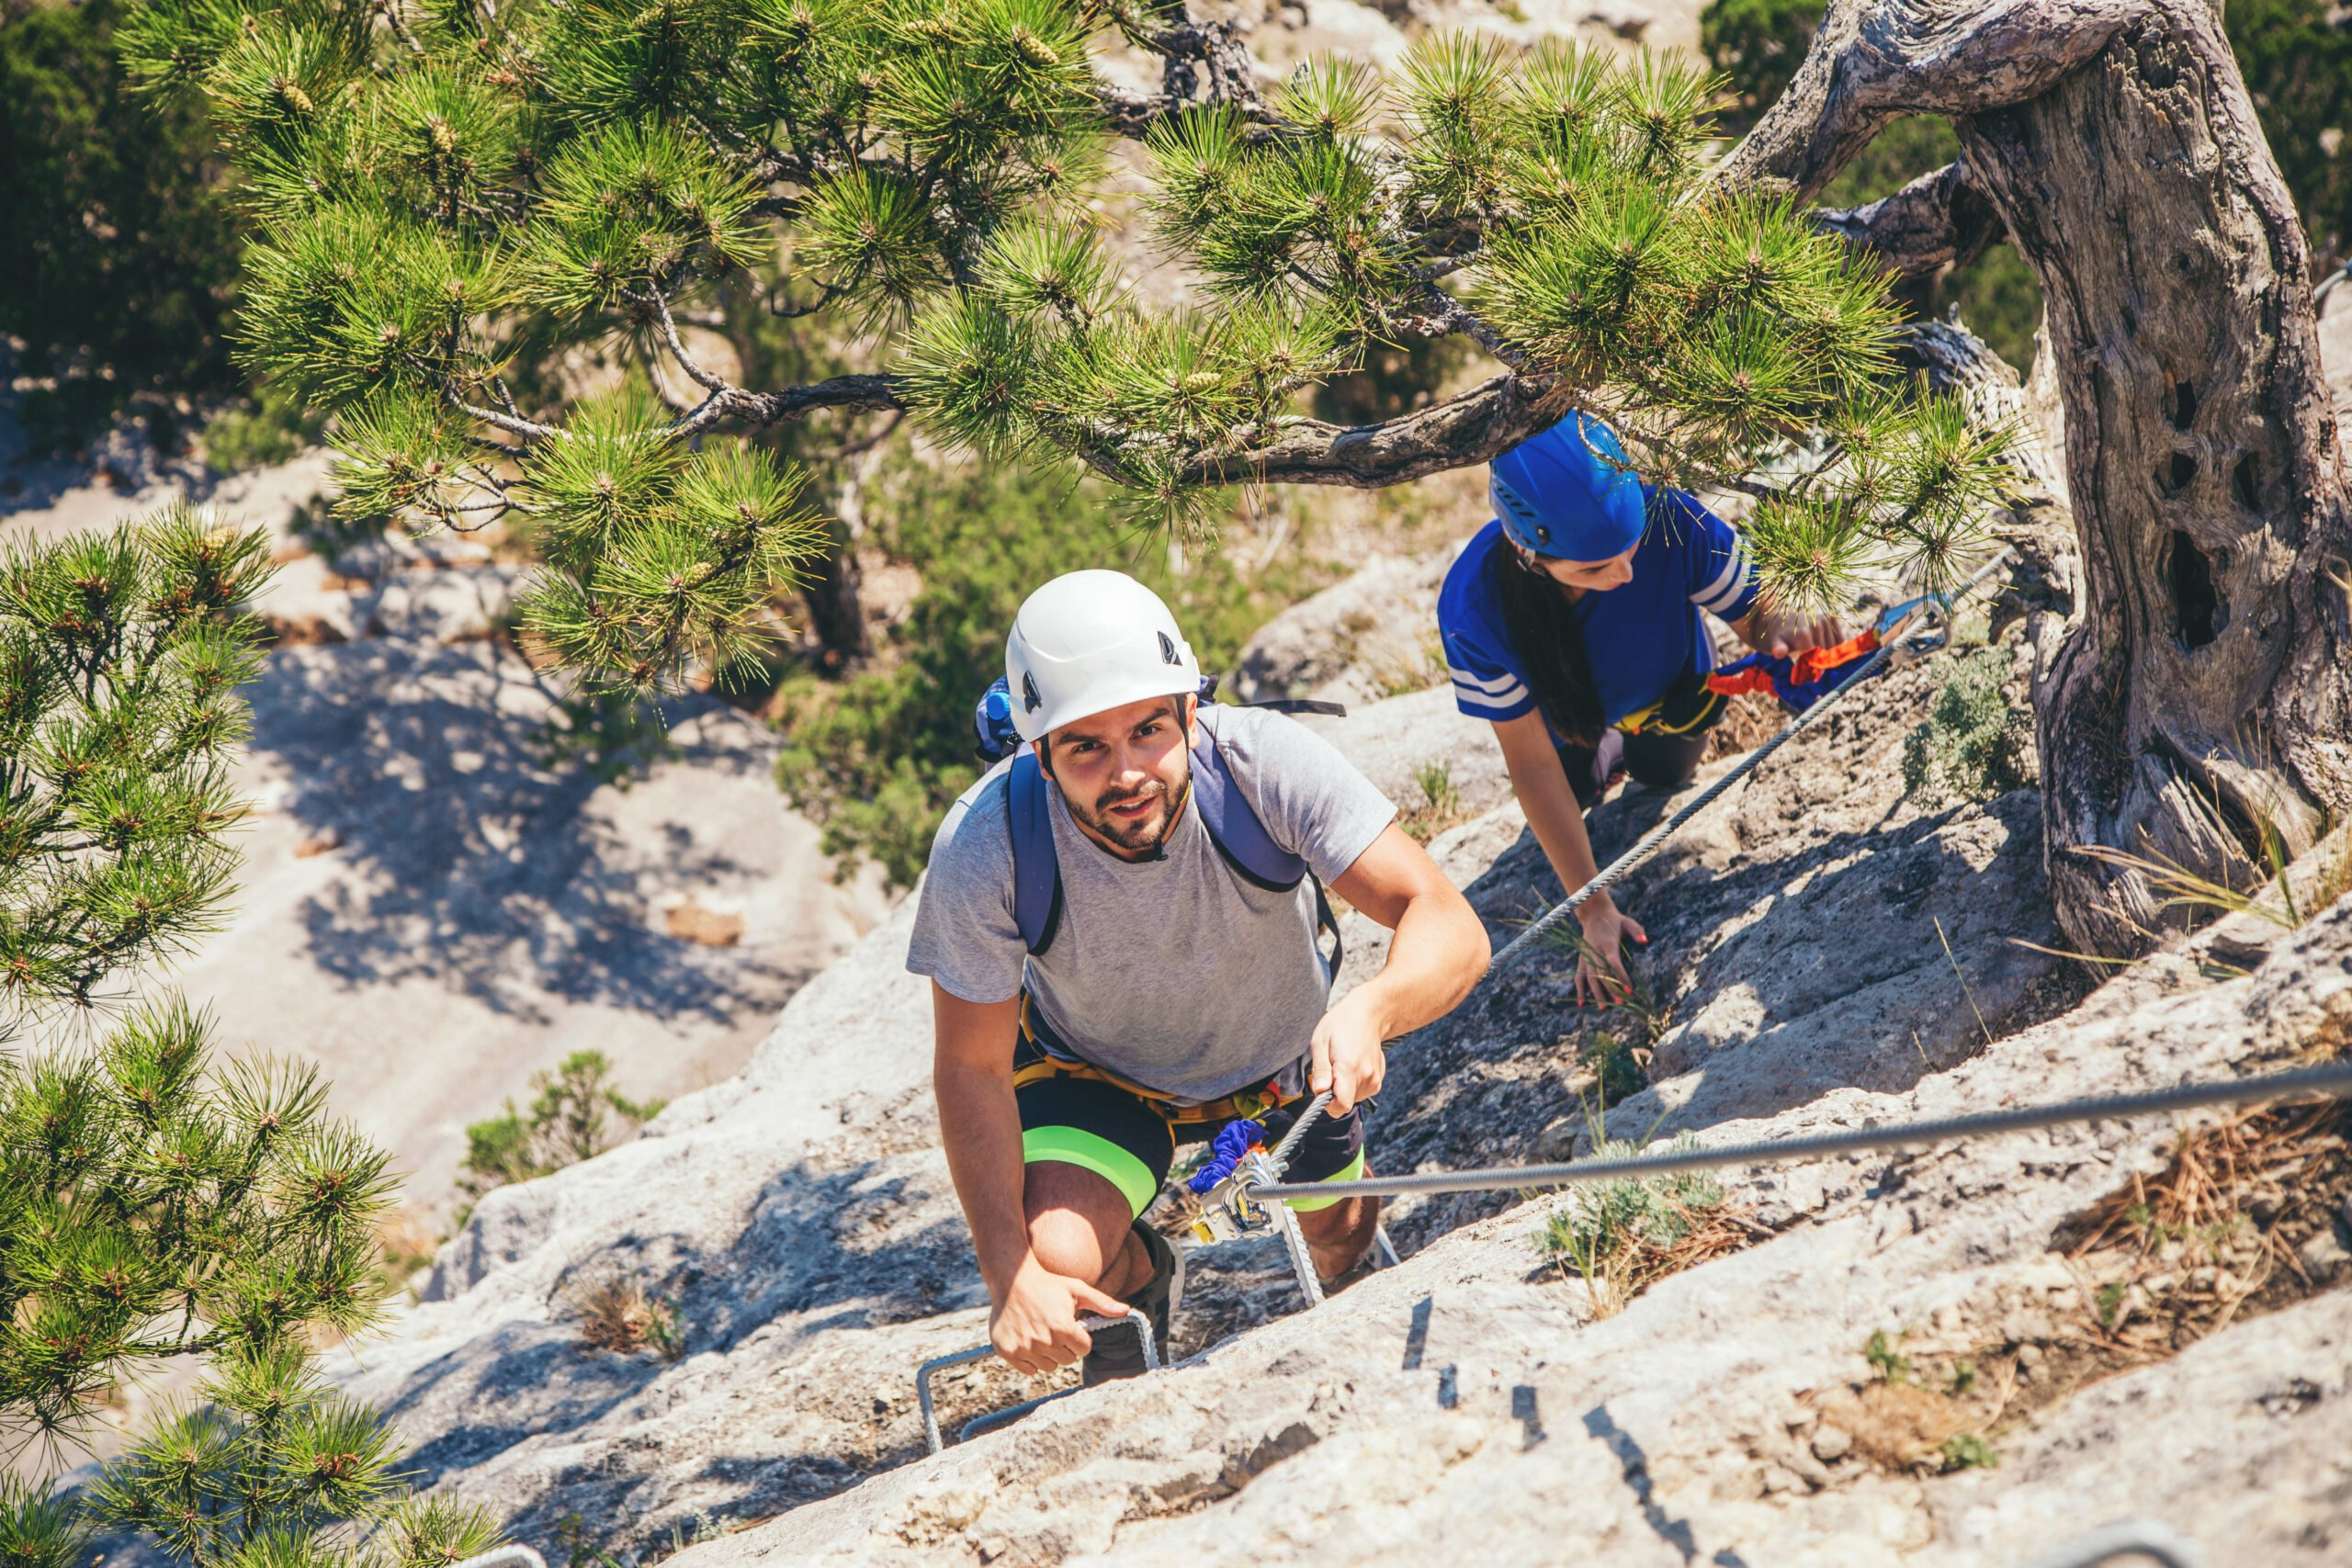 Thrilling Mountain Activity Based On A Mixture Of Alpine Hiking And Rock Climbing Principles In Our Via Ferrata Adventure Tour From Madrid